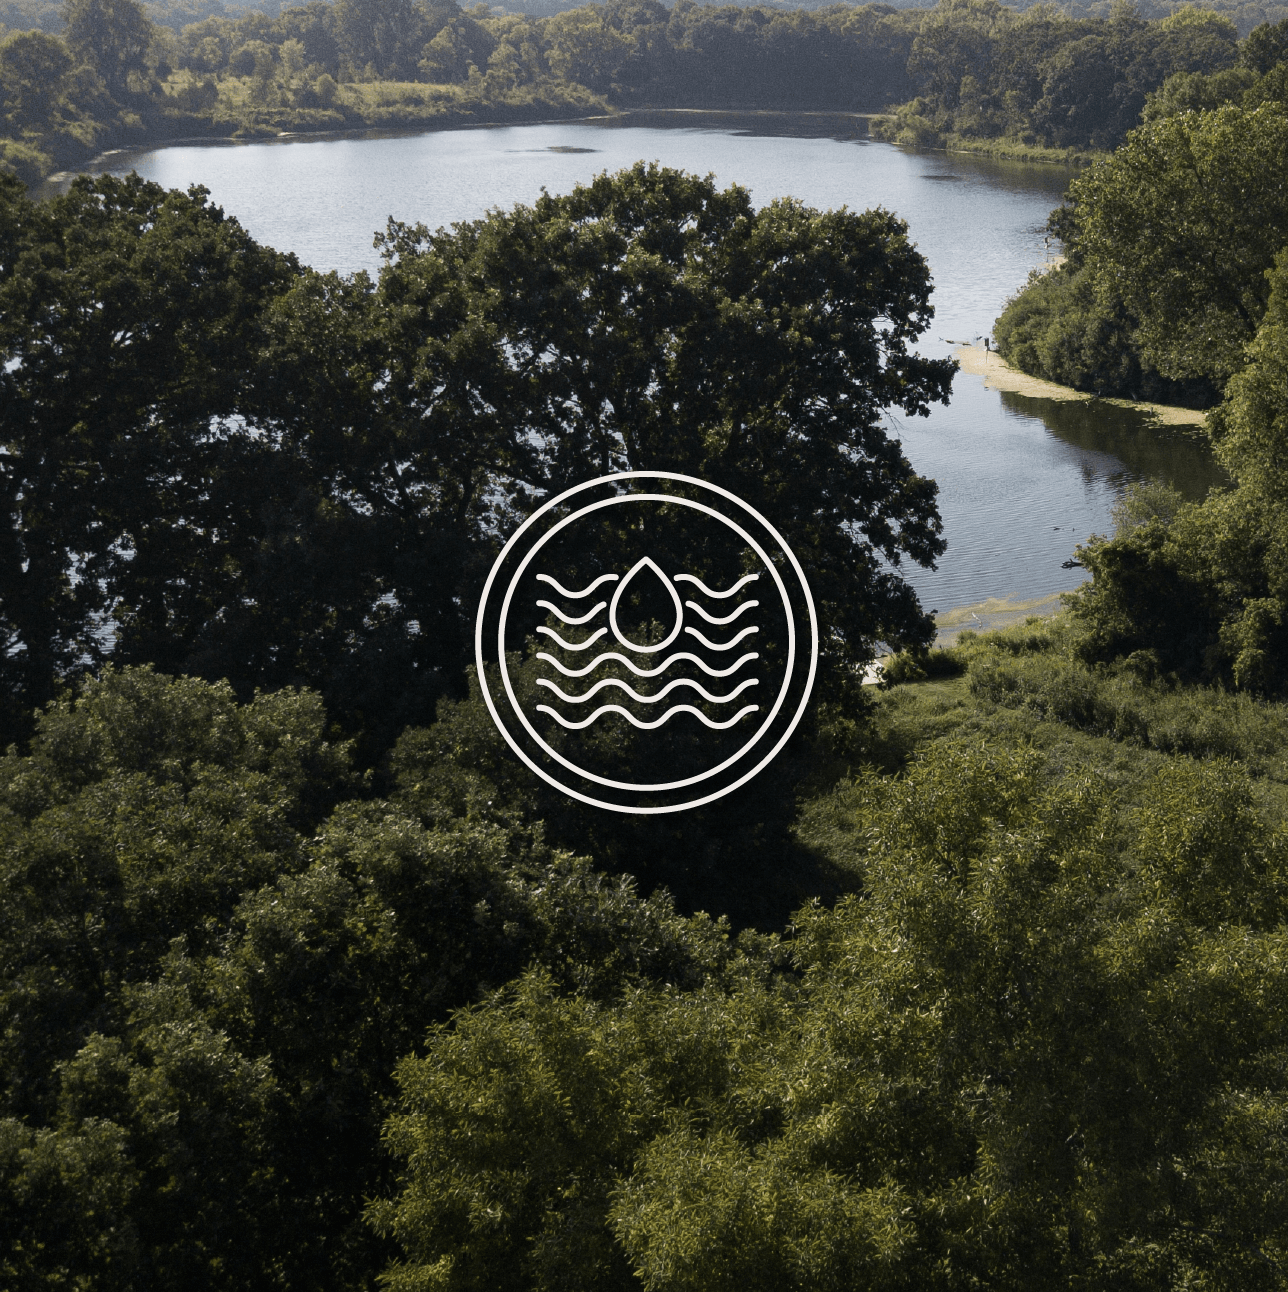 An image of a lake and trees with an icon of a water drop and waves.